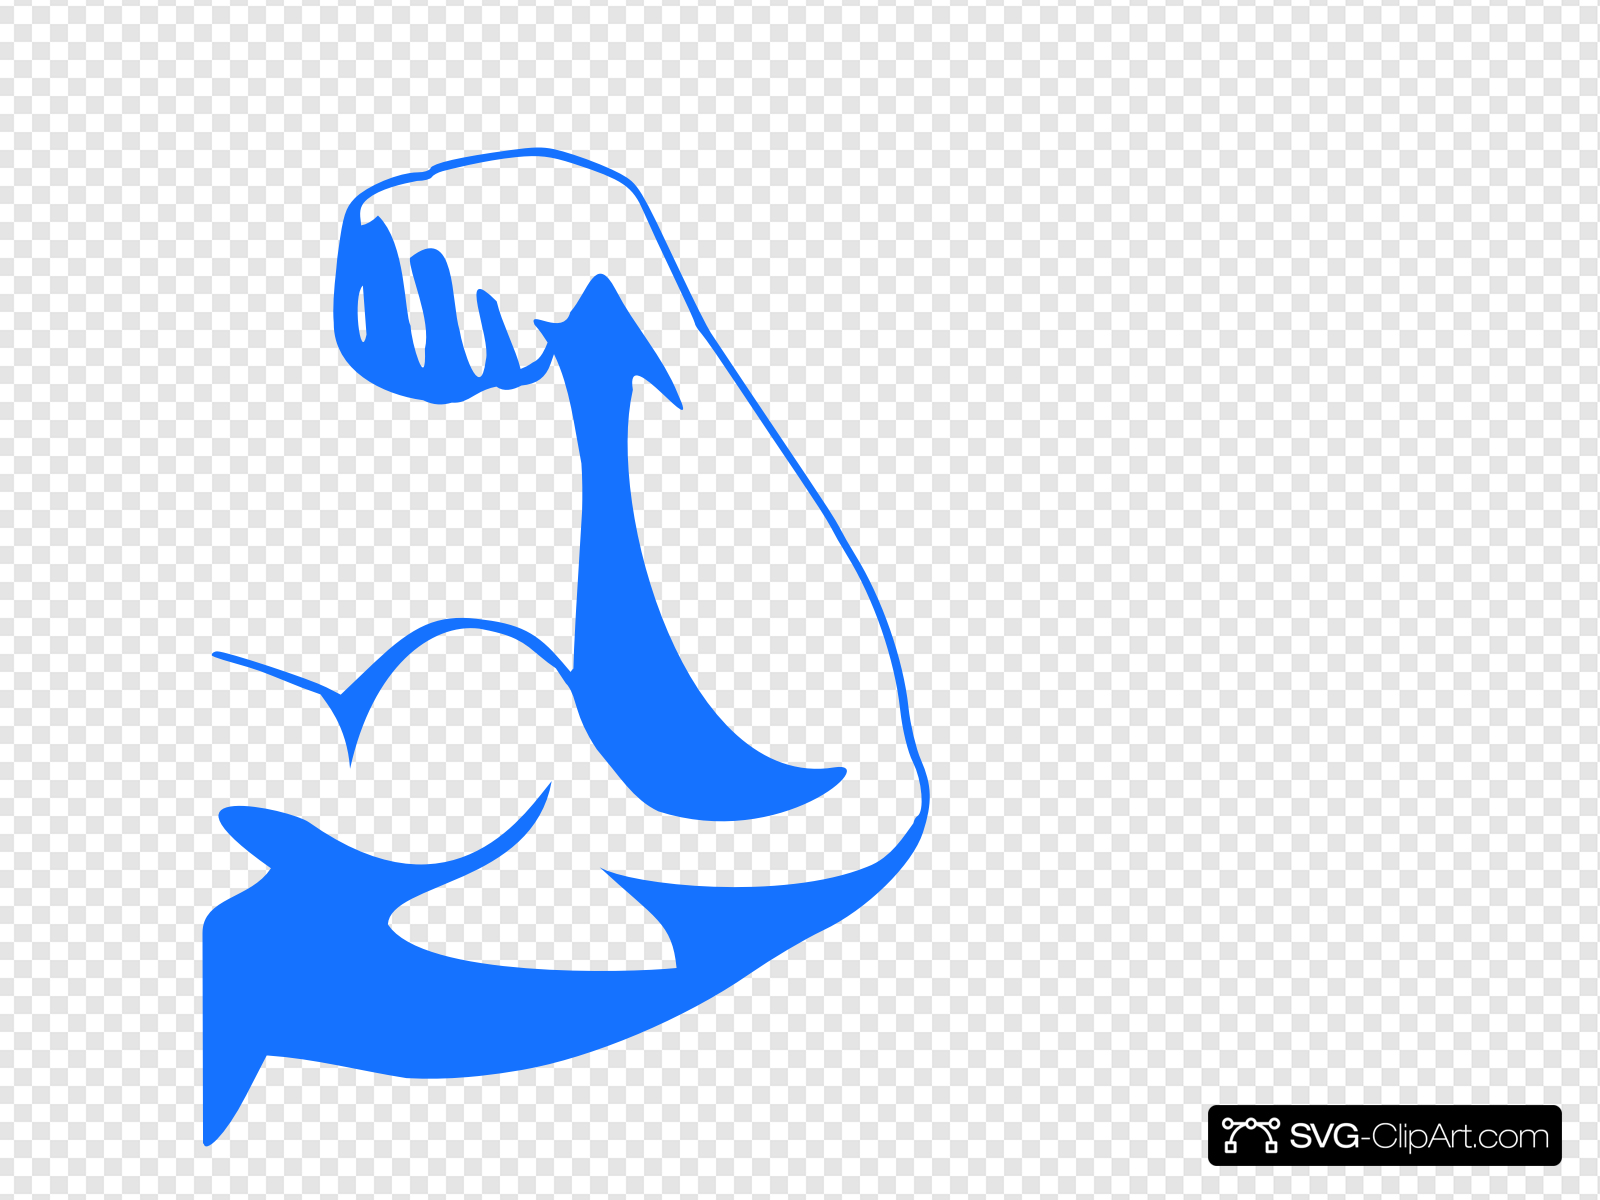 Strong Arm Blue Clip art, Icon and SVG.